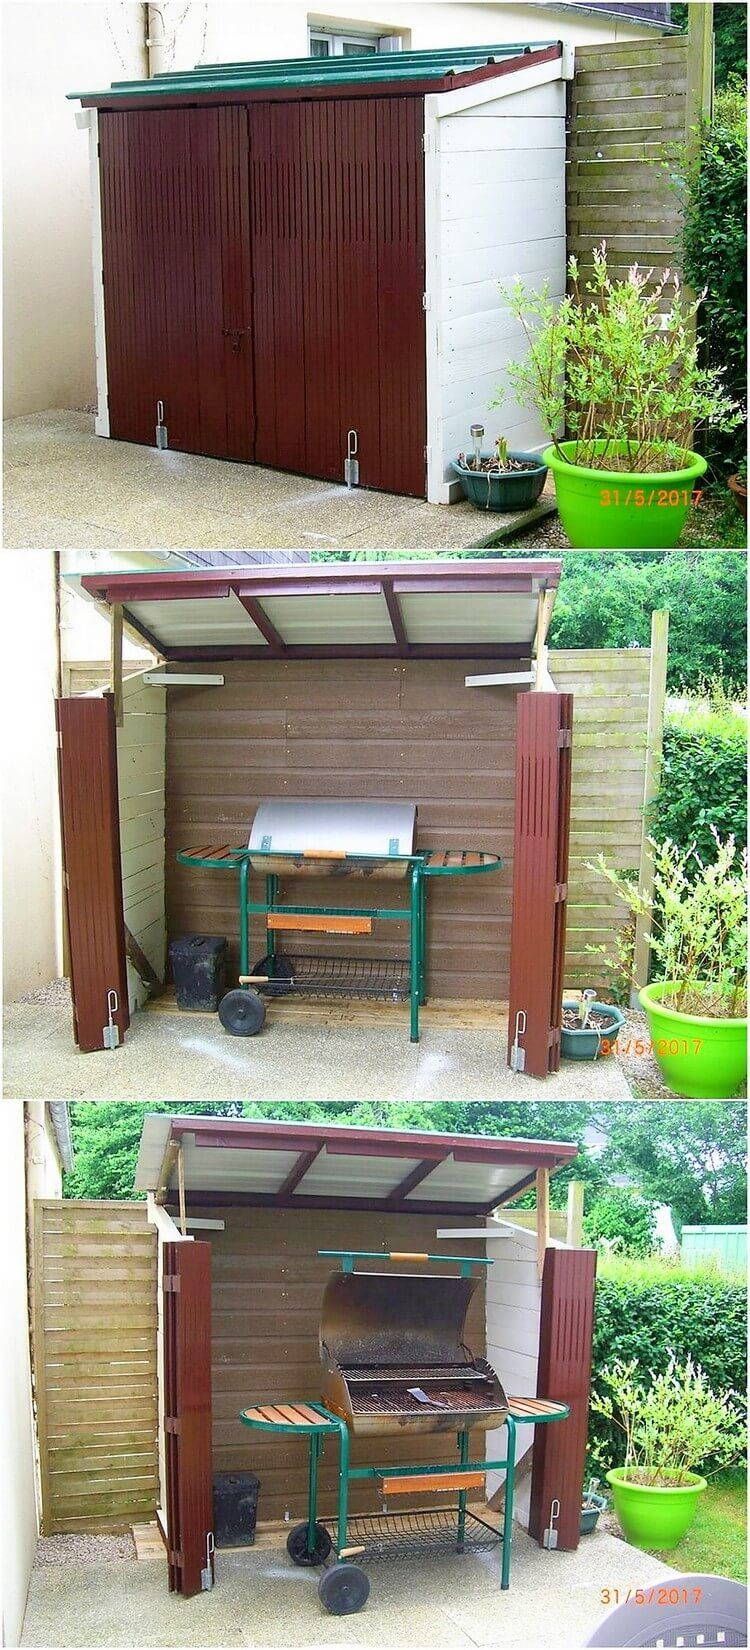 Excellent DIY Ideas with Old Shipping